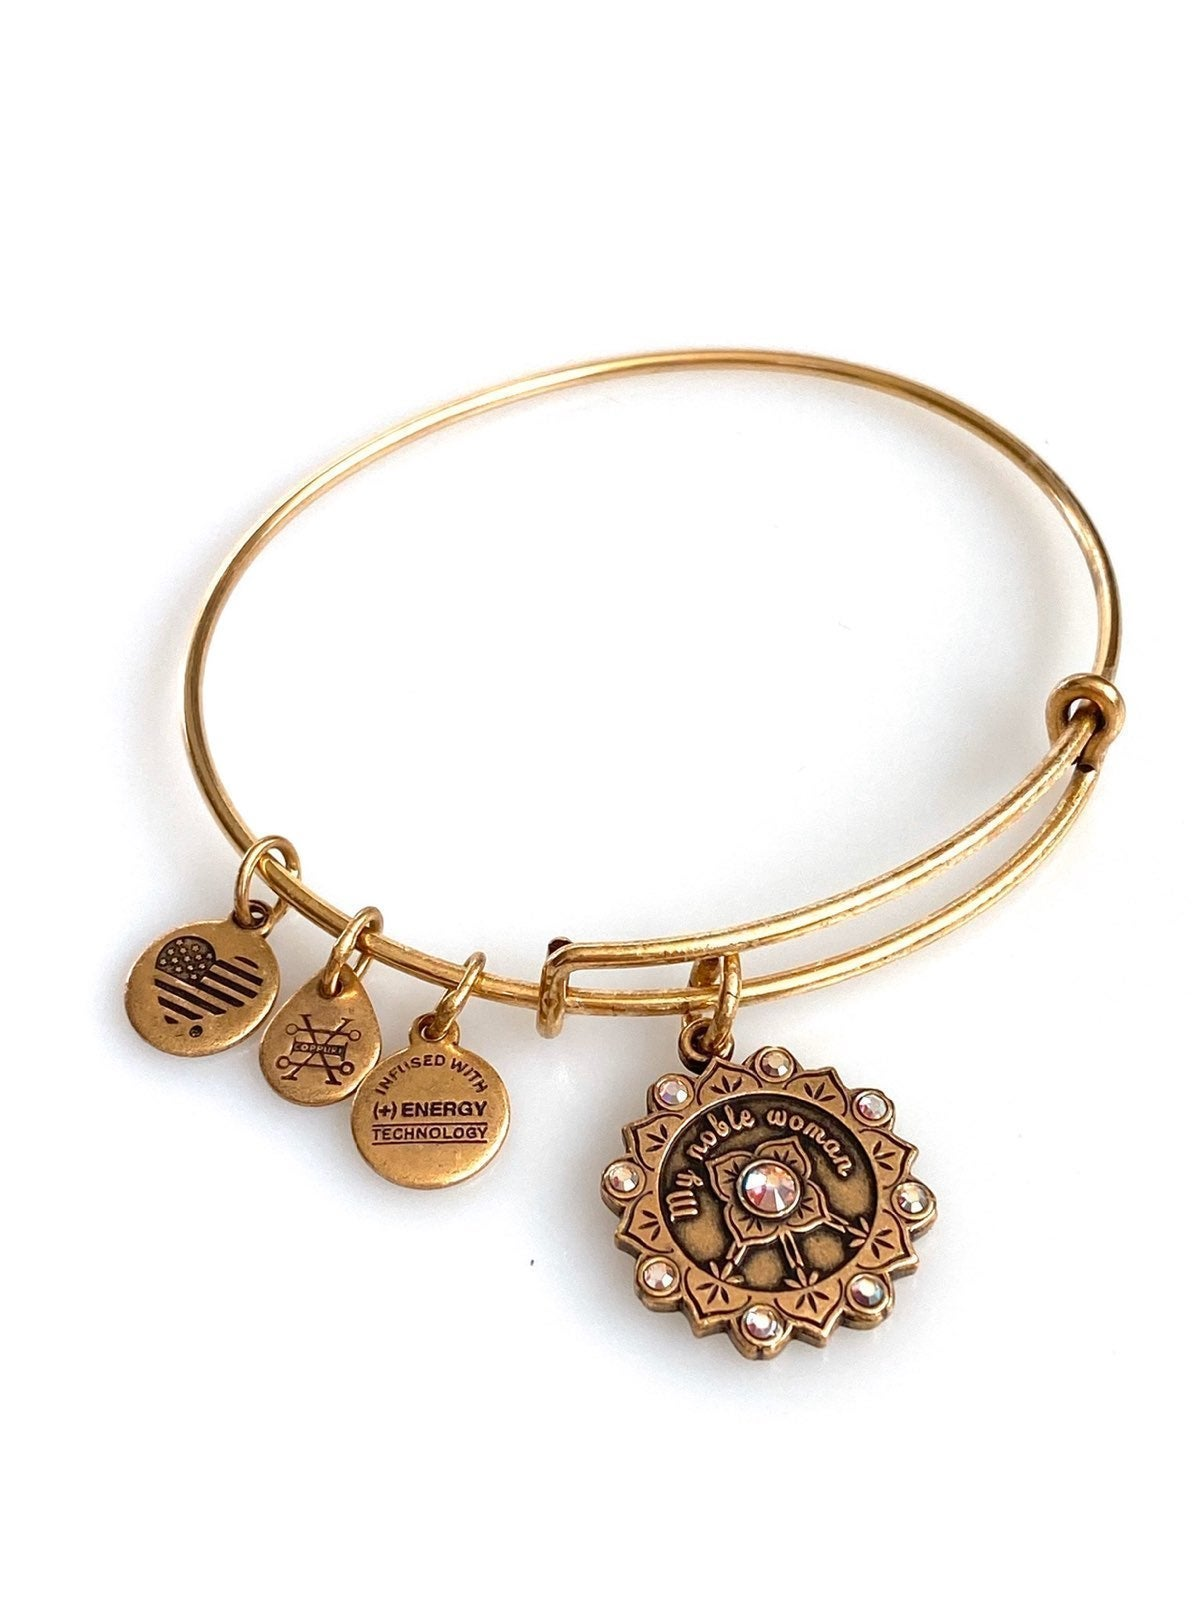 Alex and Ani Maid of Honor bracelet